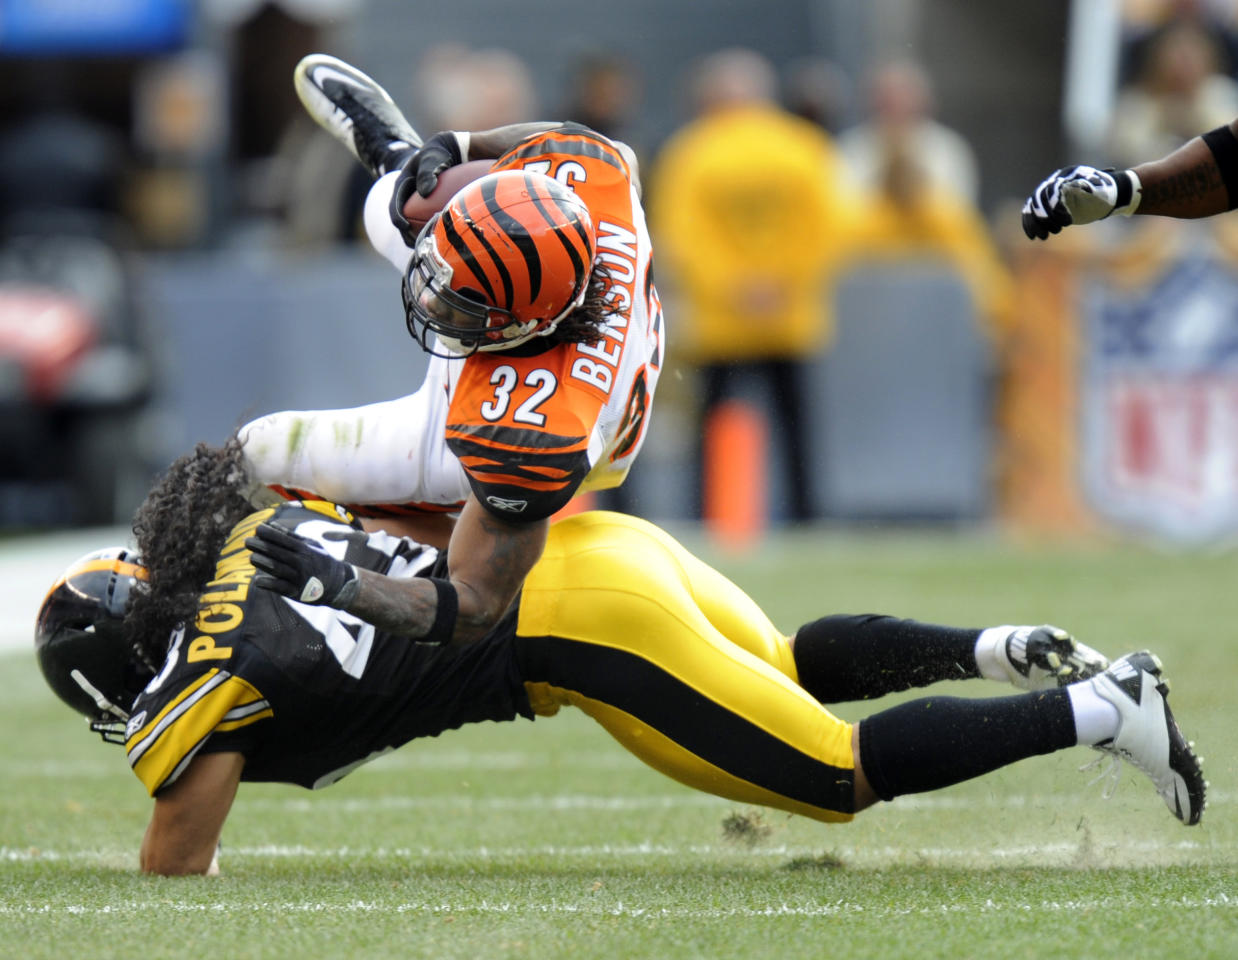 Pittsburgh Steelers strong safety Troy Polamalu (43) upends Cincinnati Bengals running back Cedric Benson (32) in the first quarter of an NFL football game in Pittsburgh on Sunday, Dec. 4, 2011. (AP Photo/Don Wright)